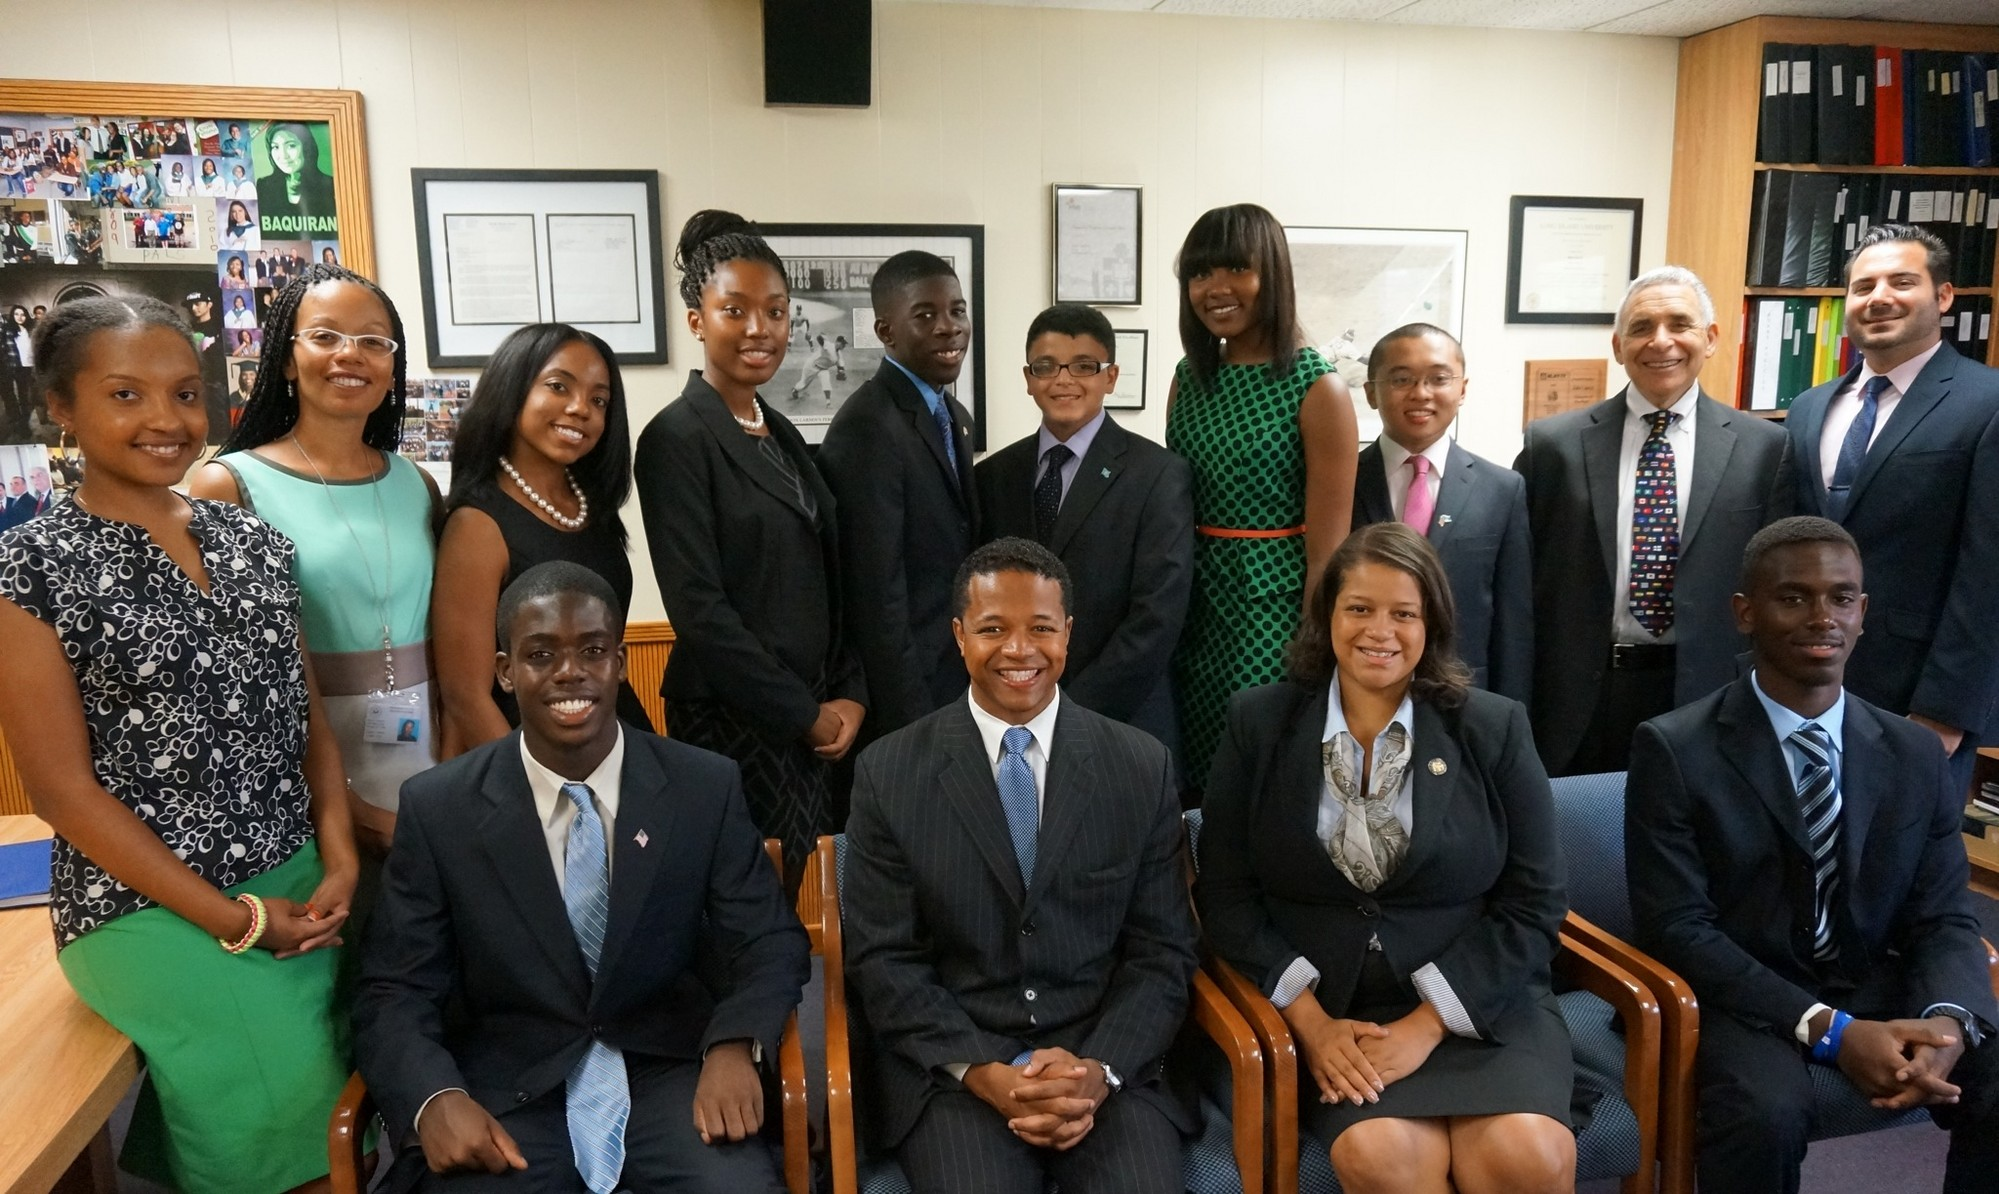 Michael Bediako, front left, Nassau County Legislator Carrie Solages, Assemblywoman Michaelle Solages, Darnell Marescot, chaperone Athena Allen, back left, EMHS MUN Co-advisor Nkenge Gilliam, Ashley Reese, Mykelle Richburg, Chukwudi Kanu, Isaiah Genao, Leanna Faulk, Christian Butron, EMHS MUN Co-advisor Melvin Kohn and chaperone Frank Nuara gathered for a photo during the Solages' visit to Elmont Memorial High School on Sept. 10.